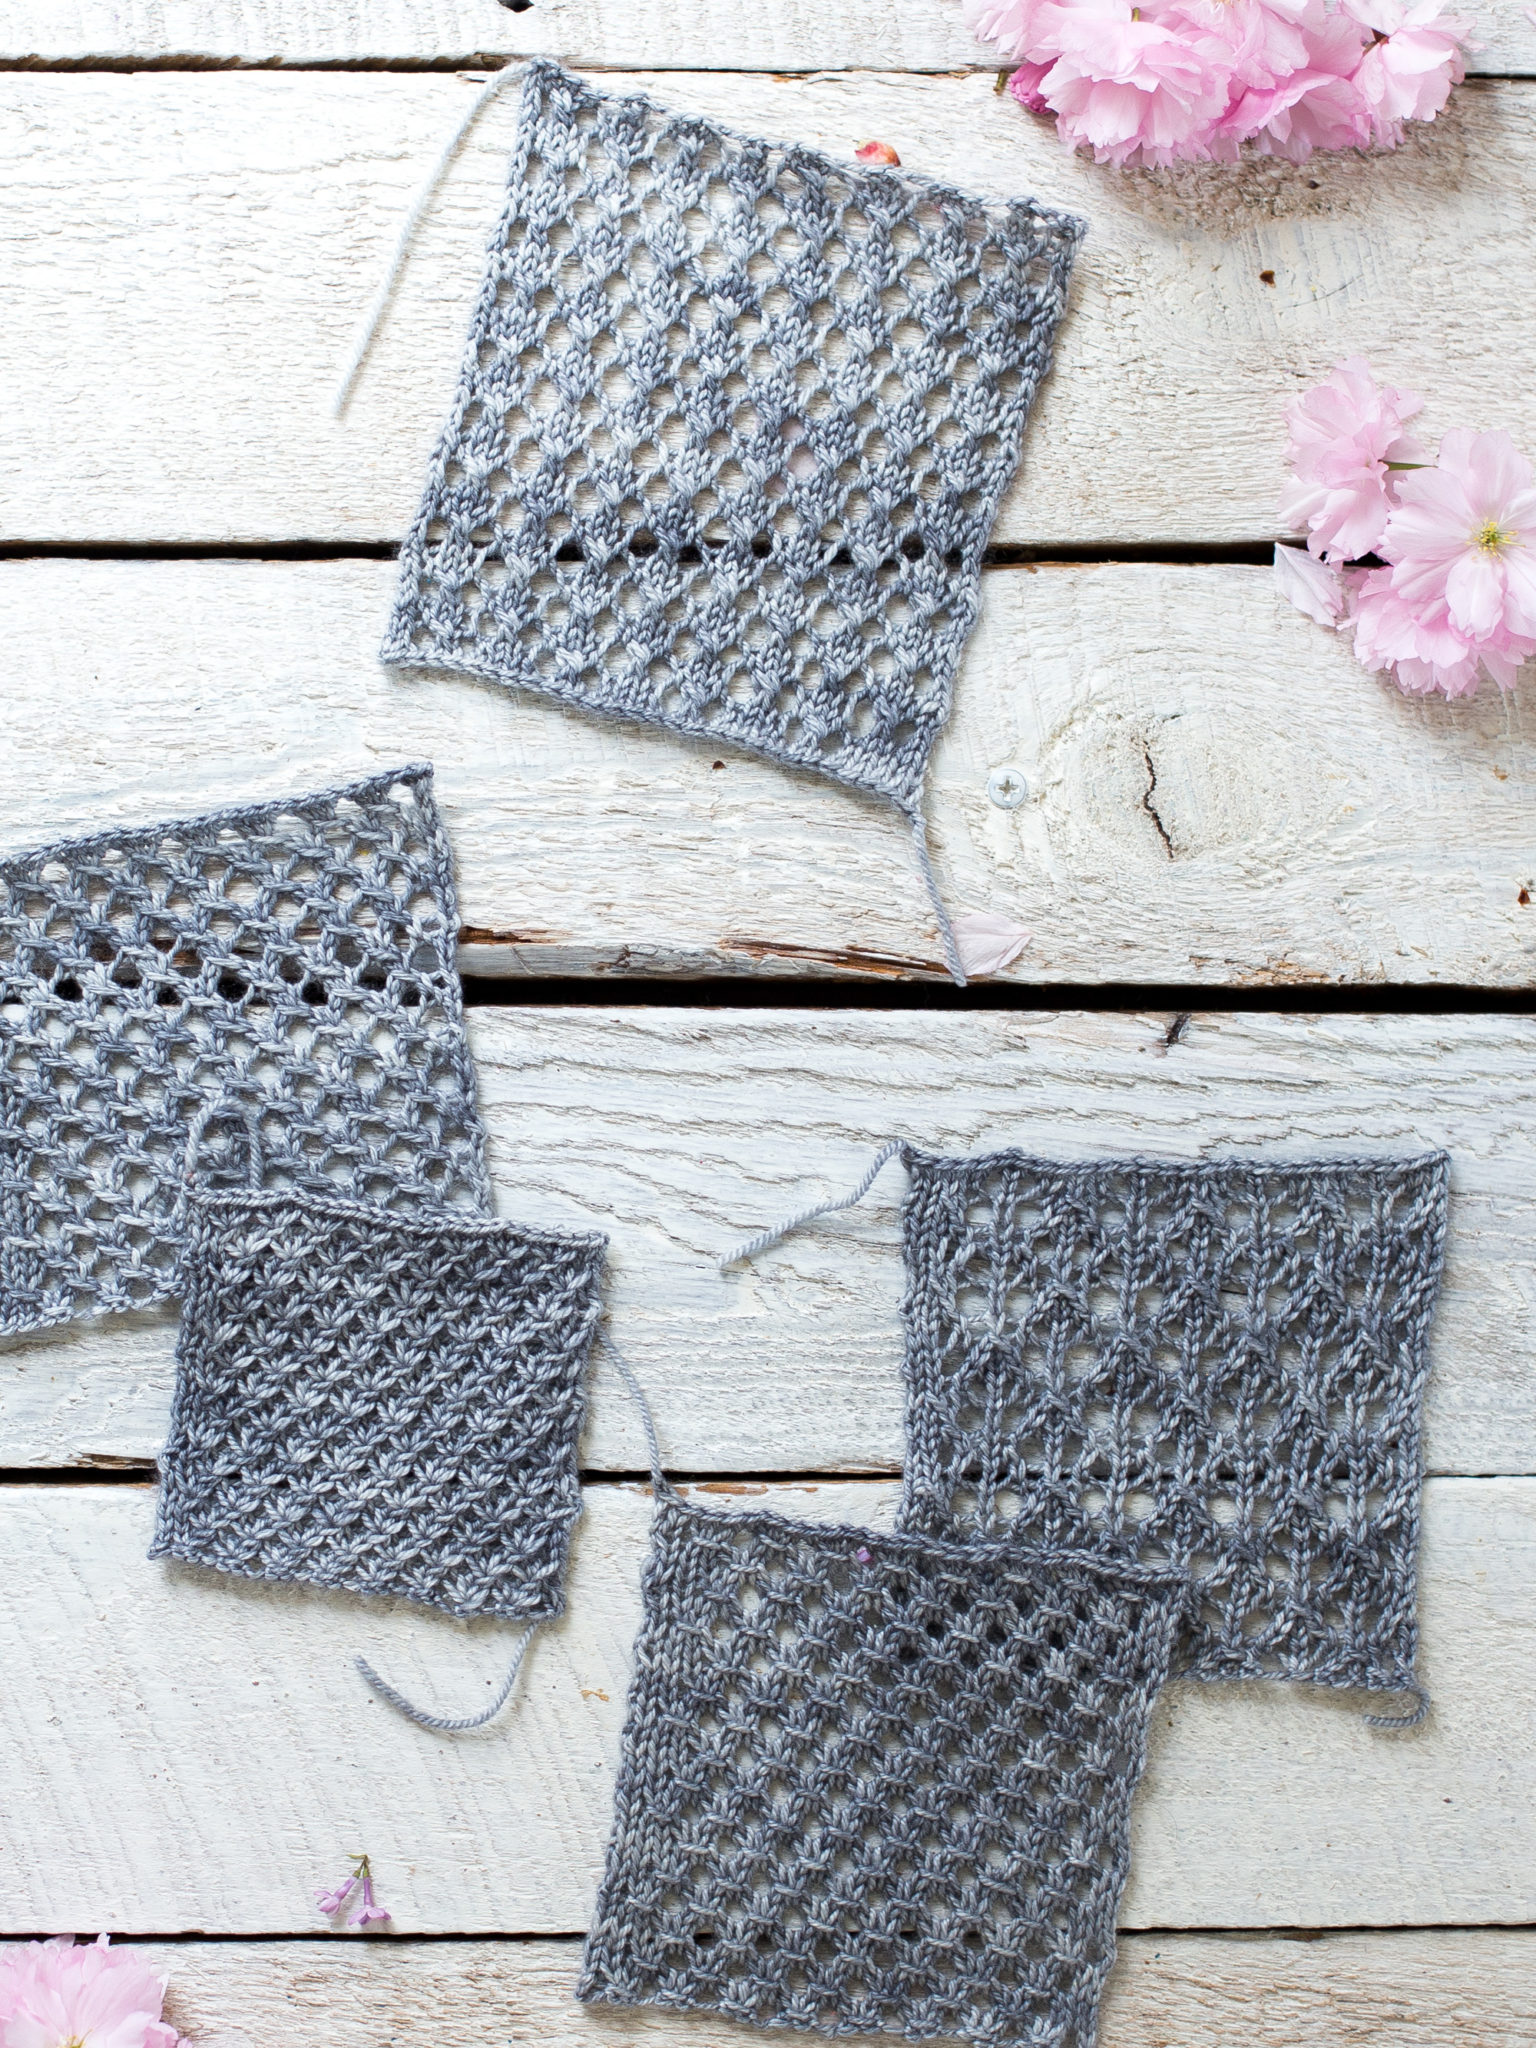 495567e6bb81 How To Make An Easy Lace Knit Shawl Pattern - Flax   Twine